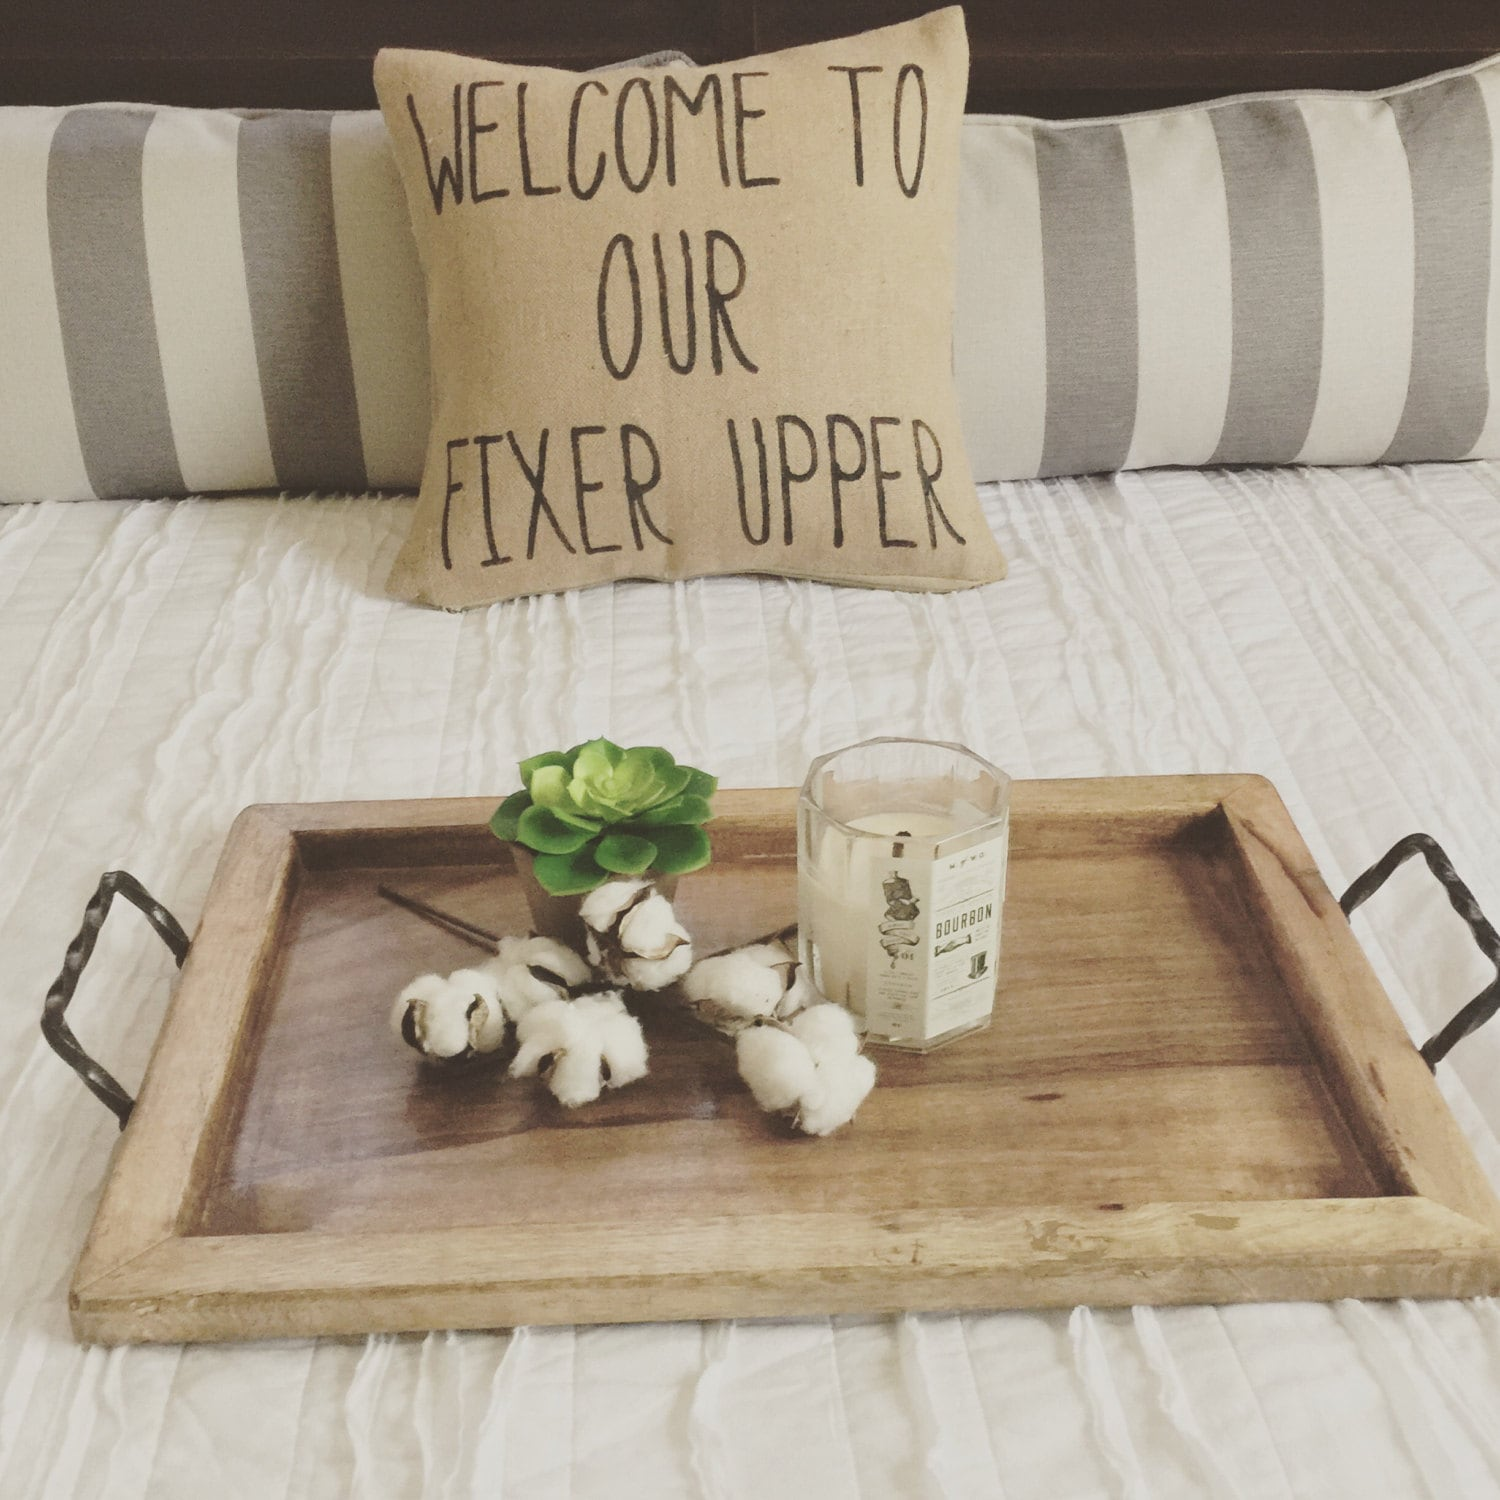 Welcome To Our Fixer Upper|Pillow Cover